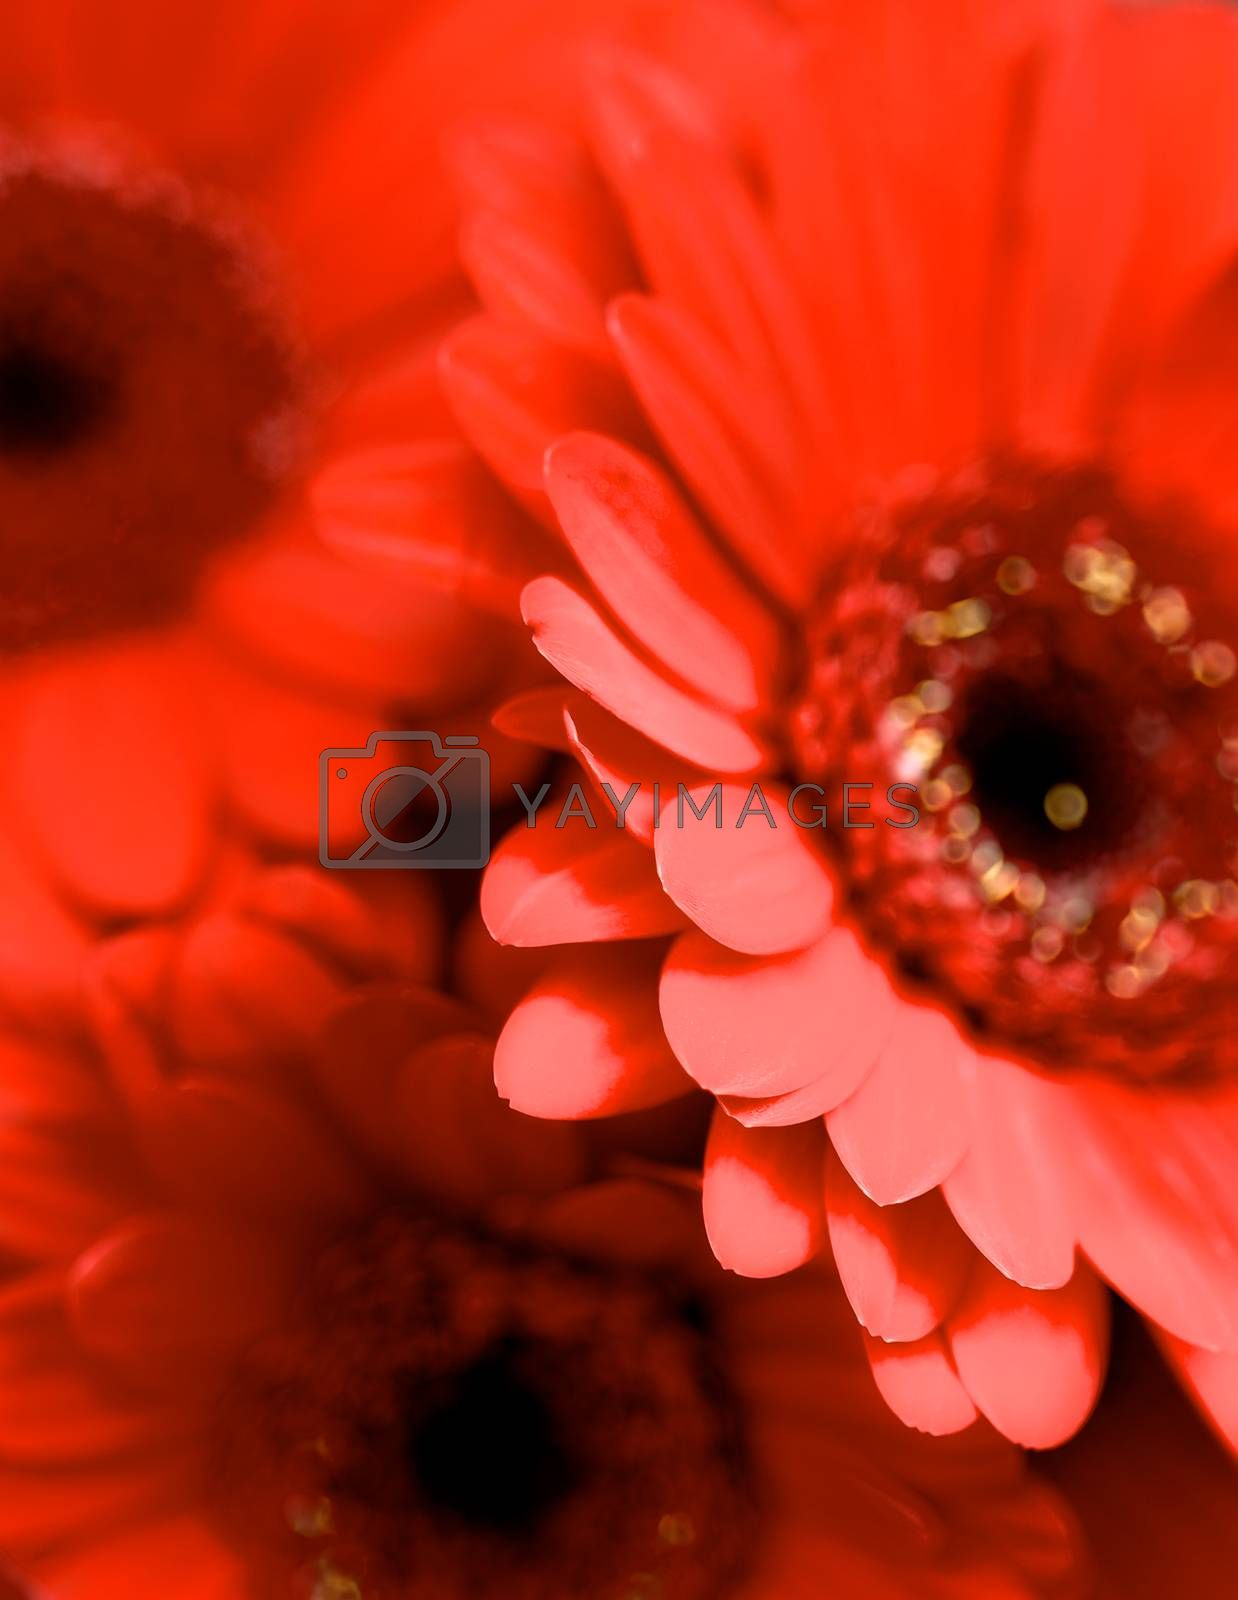 Background of Beauty Red Gerbera Flowers closeup. Focus on Edge of Petals